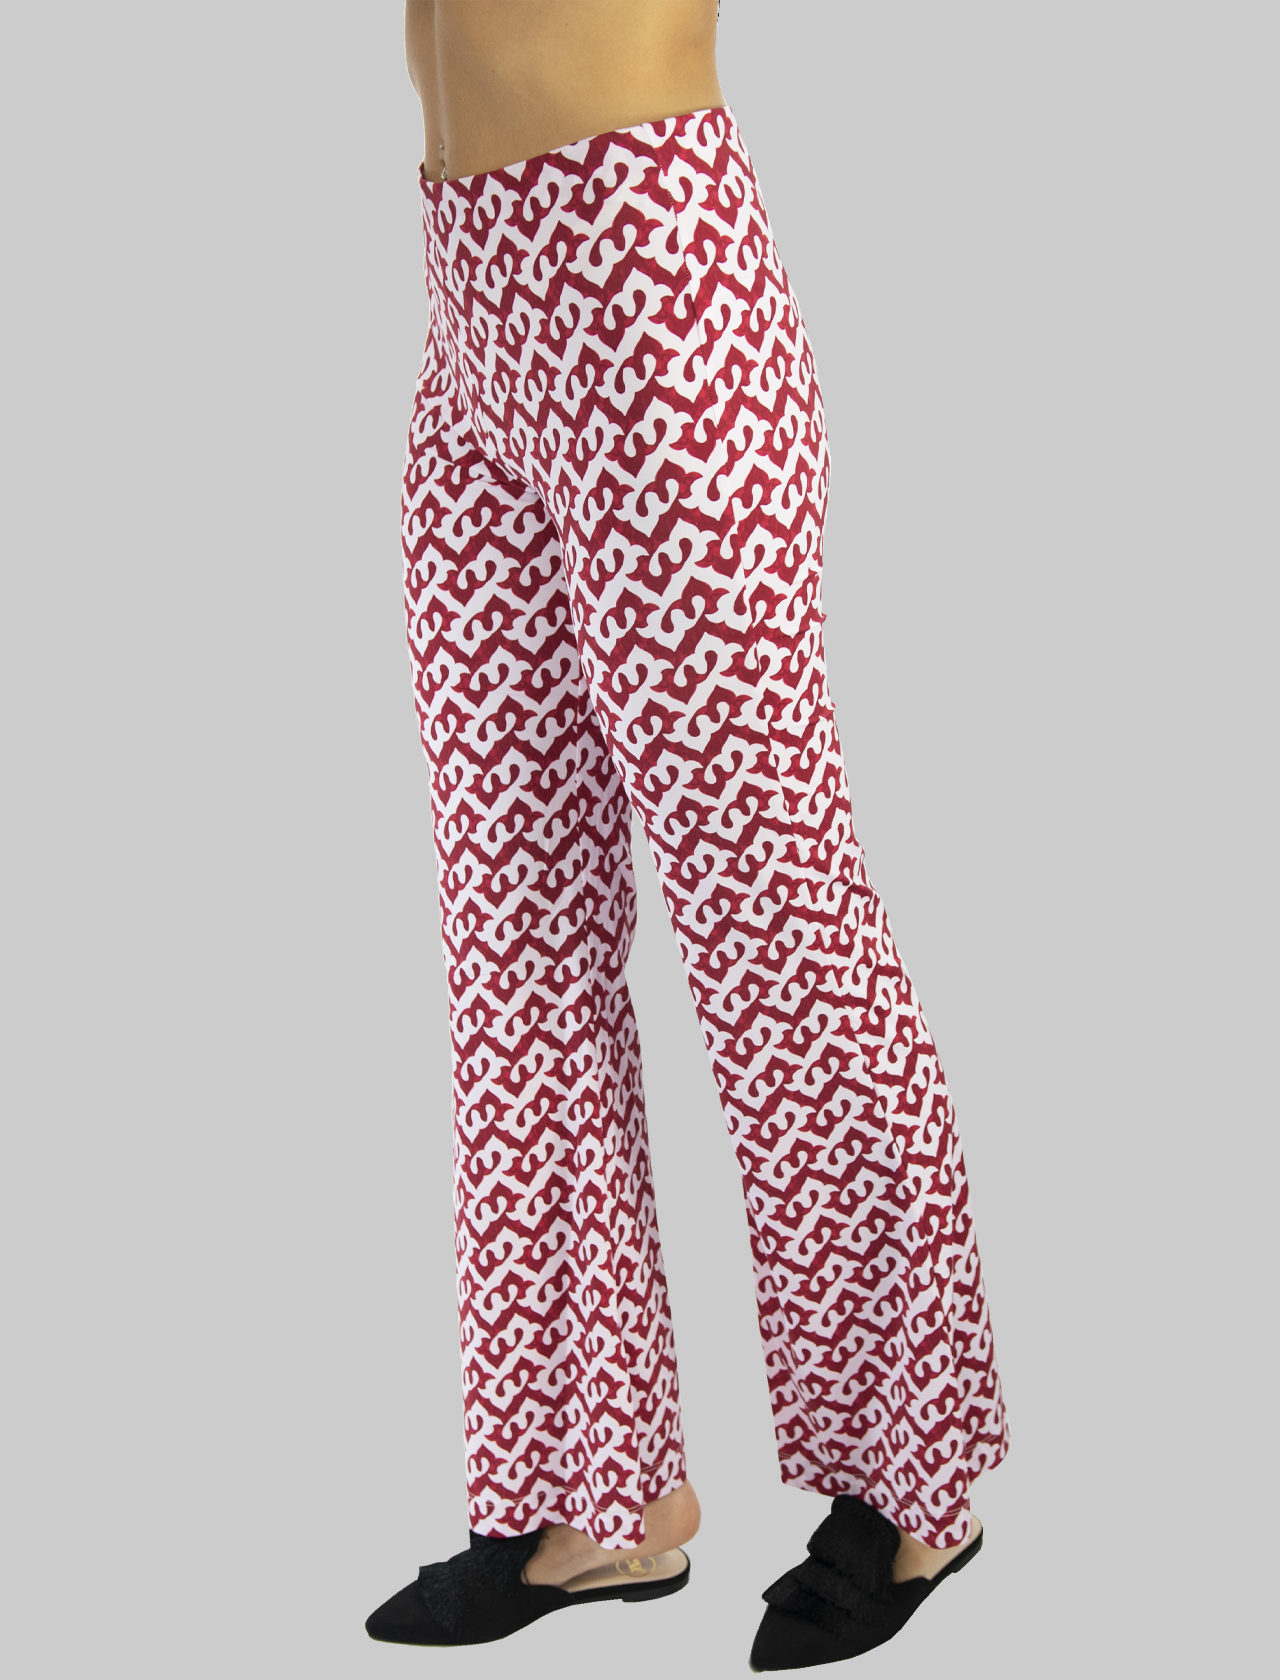 Women's Clothing Ceres Drop Trousers in Red and Pink Jersey Maliparmi | Skirts and Pants | JH719570498A3092